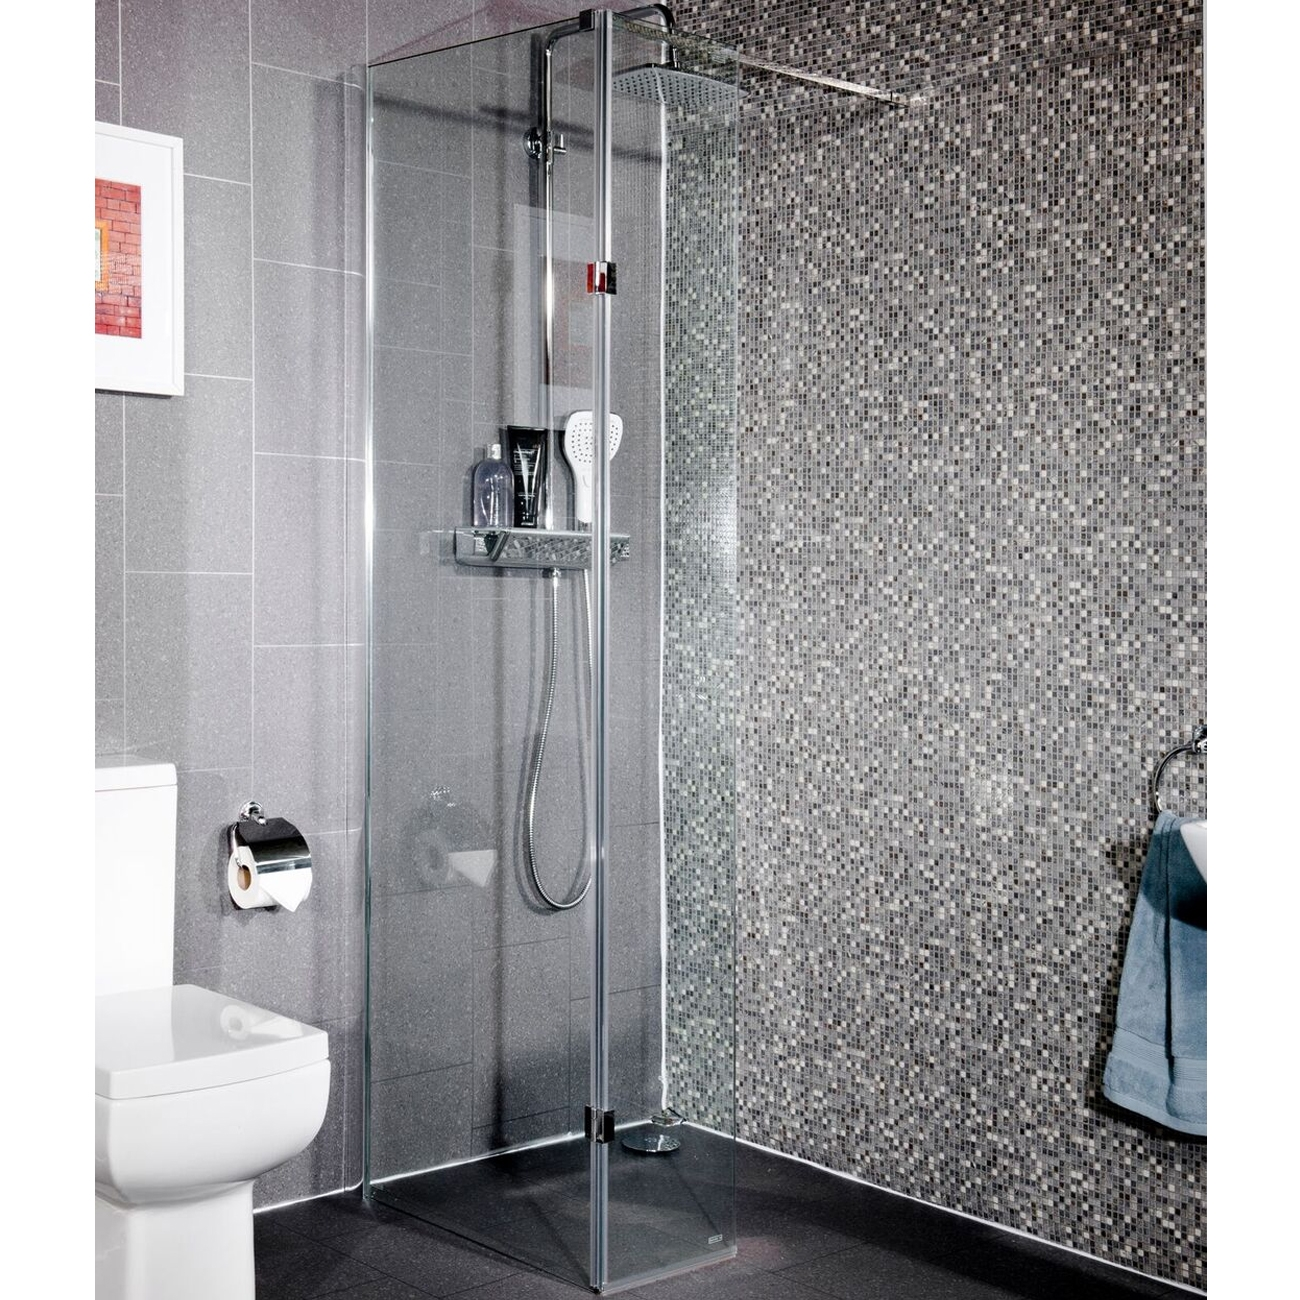 Cali Lana Easy Clean Wet Room Glass Panel 700mm Wide - 10mm Glass-1